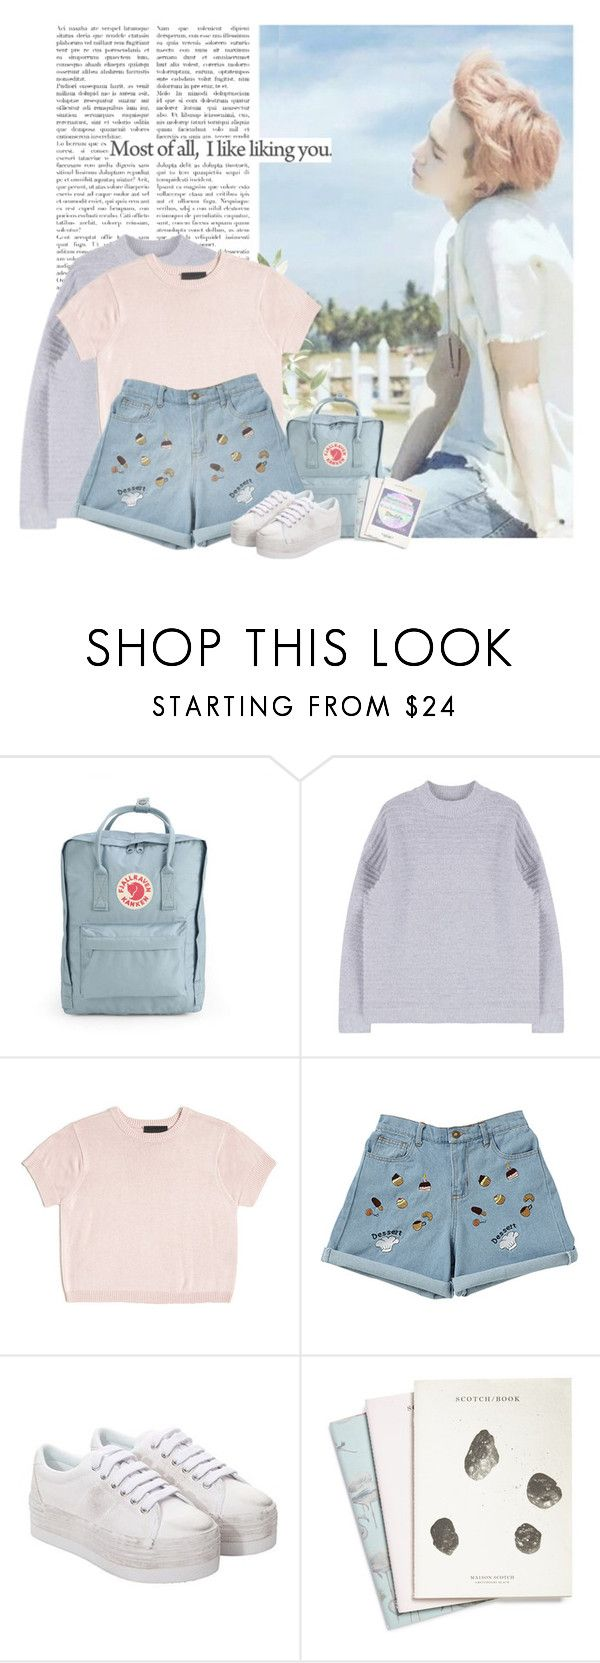 """""""Suga: most of all, i like liking you"""" by yxing ❤ liked on Polyvore featuring Fjällräven, Cynthia Rowley, Jeffrey Campbell, Maison Scotch, Tag, kpop, Suga, bangtan and Yusss"""